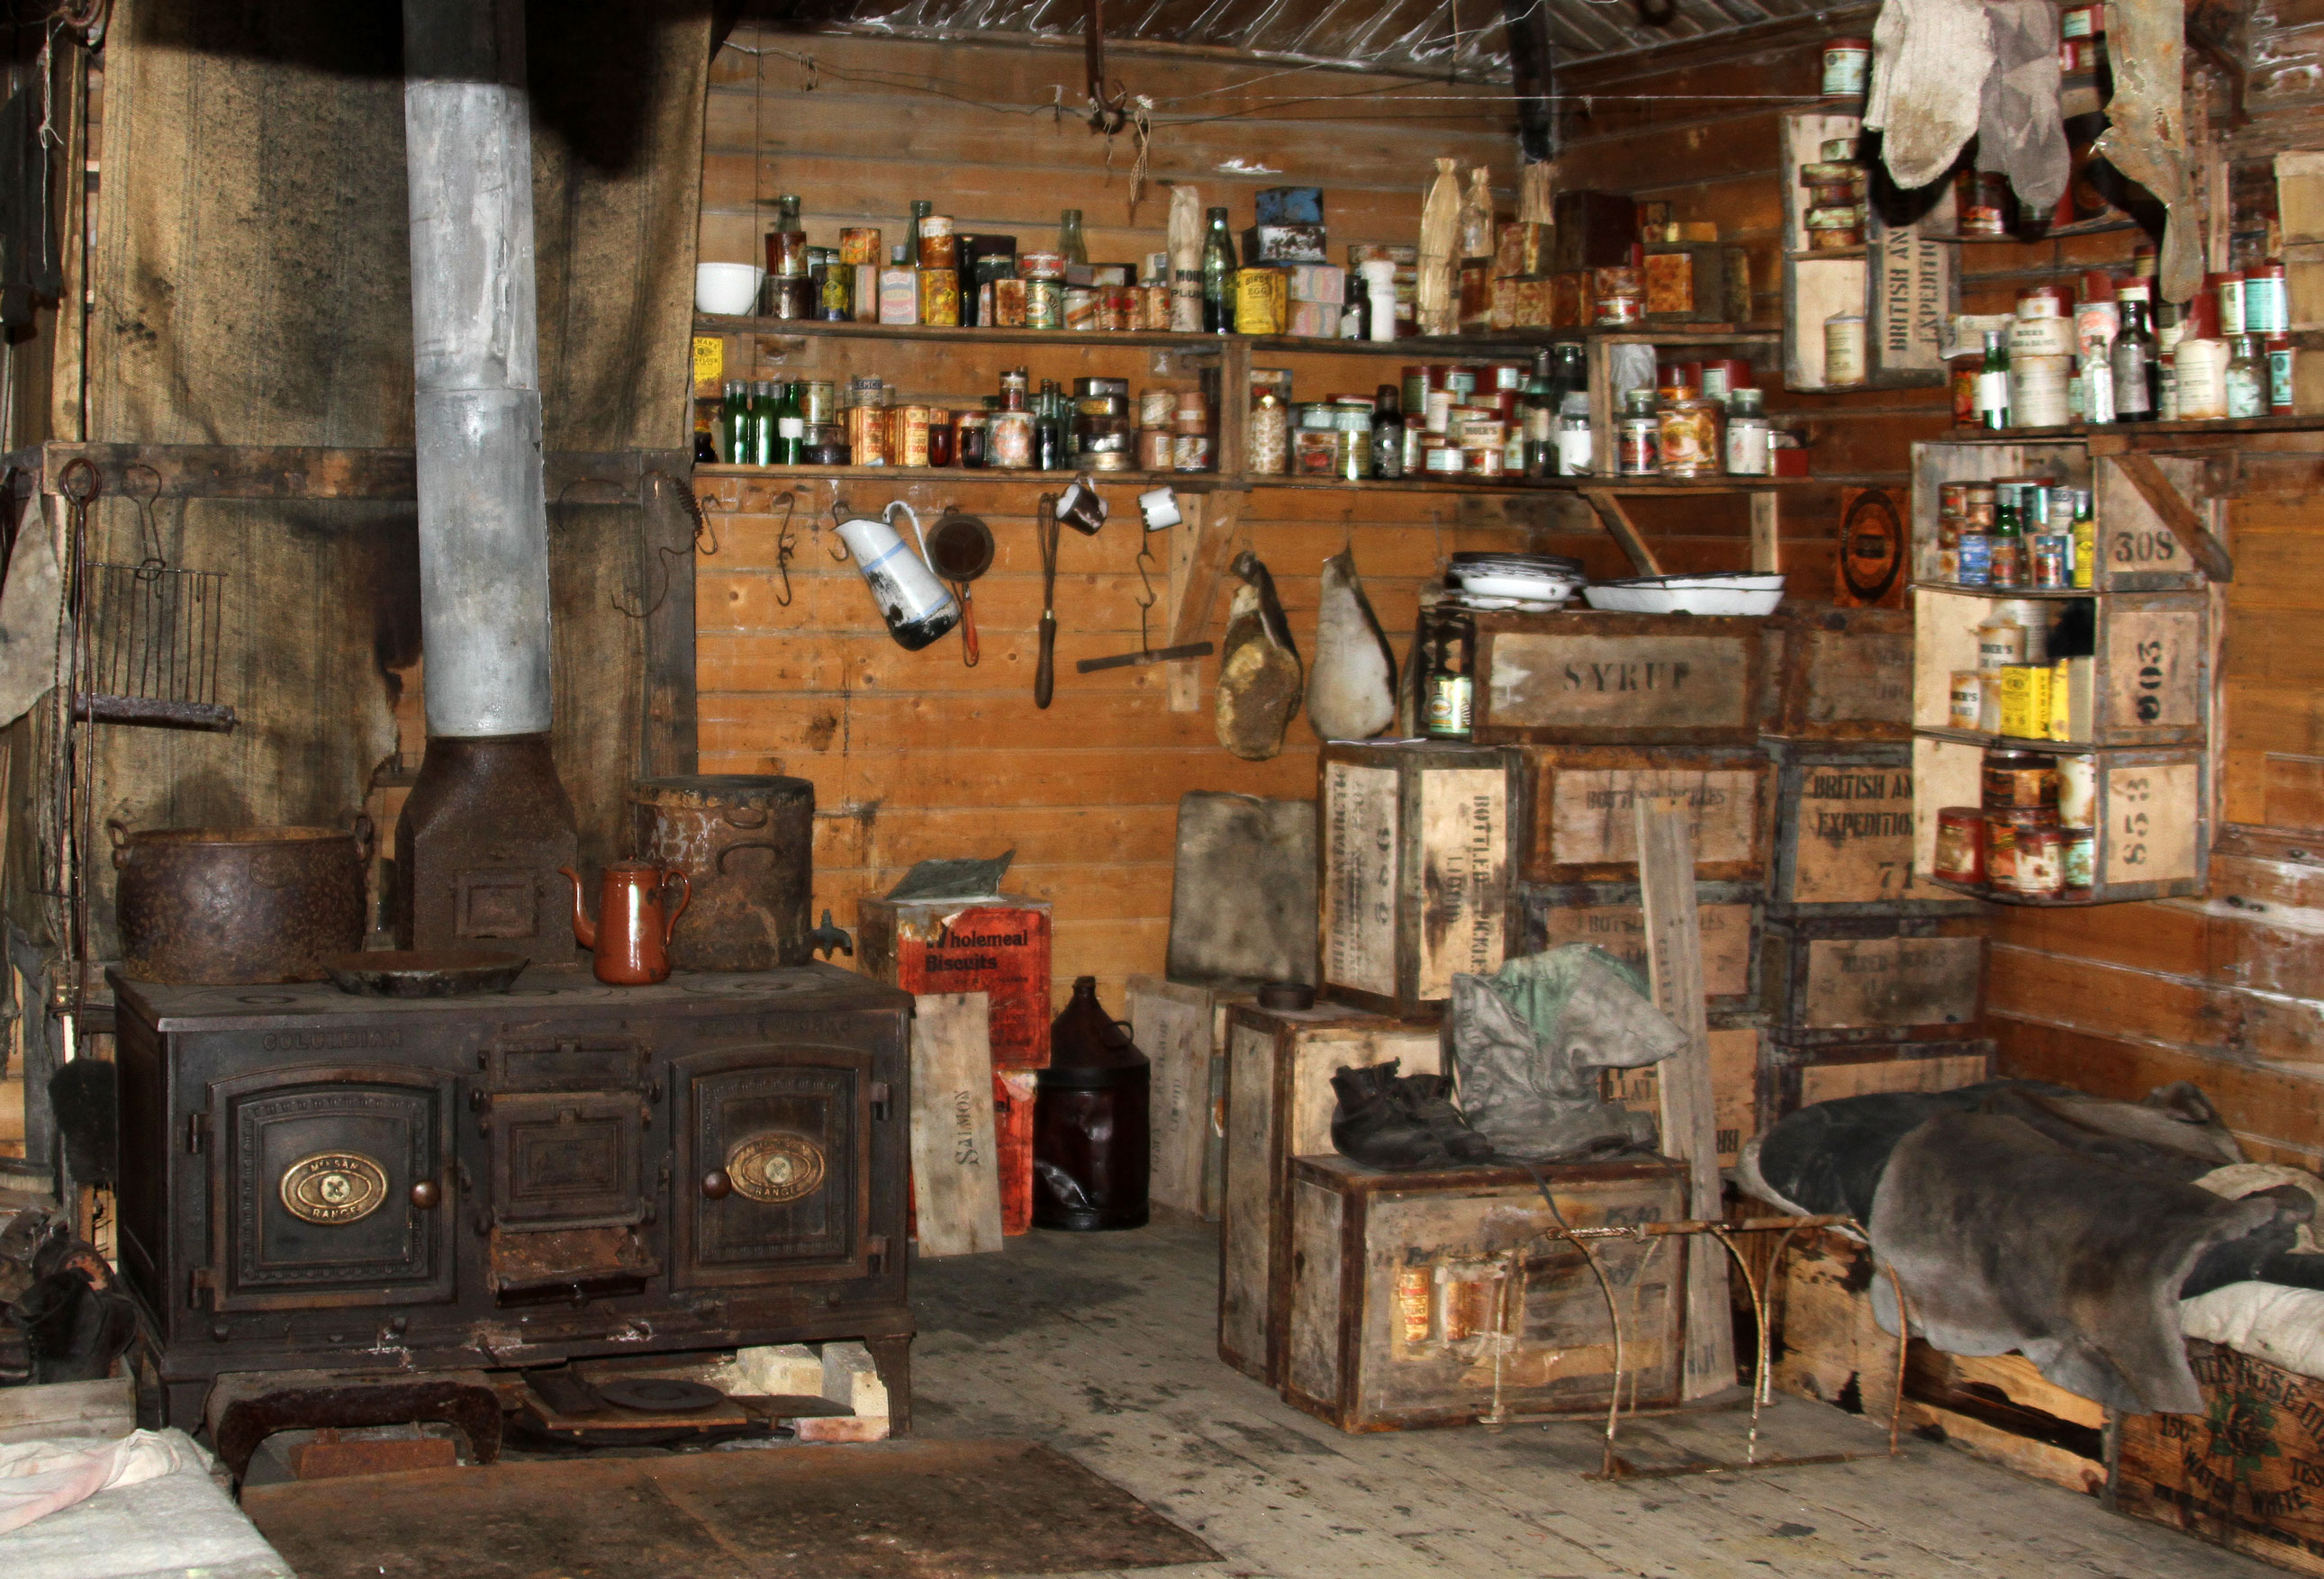 The inside of Shackleton's Hut at Cape Royd's.  The contents have been preserved and restored with great care.